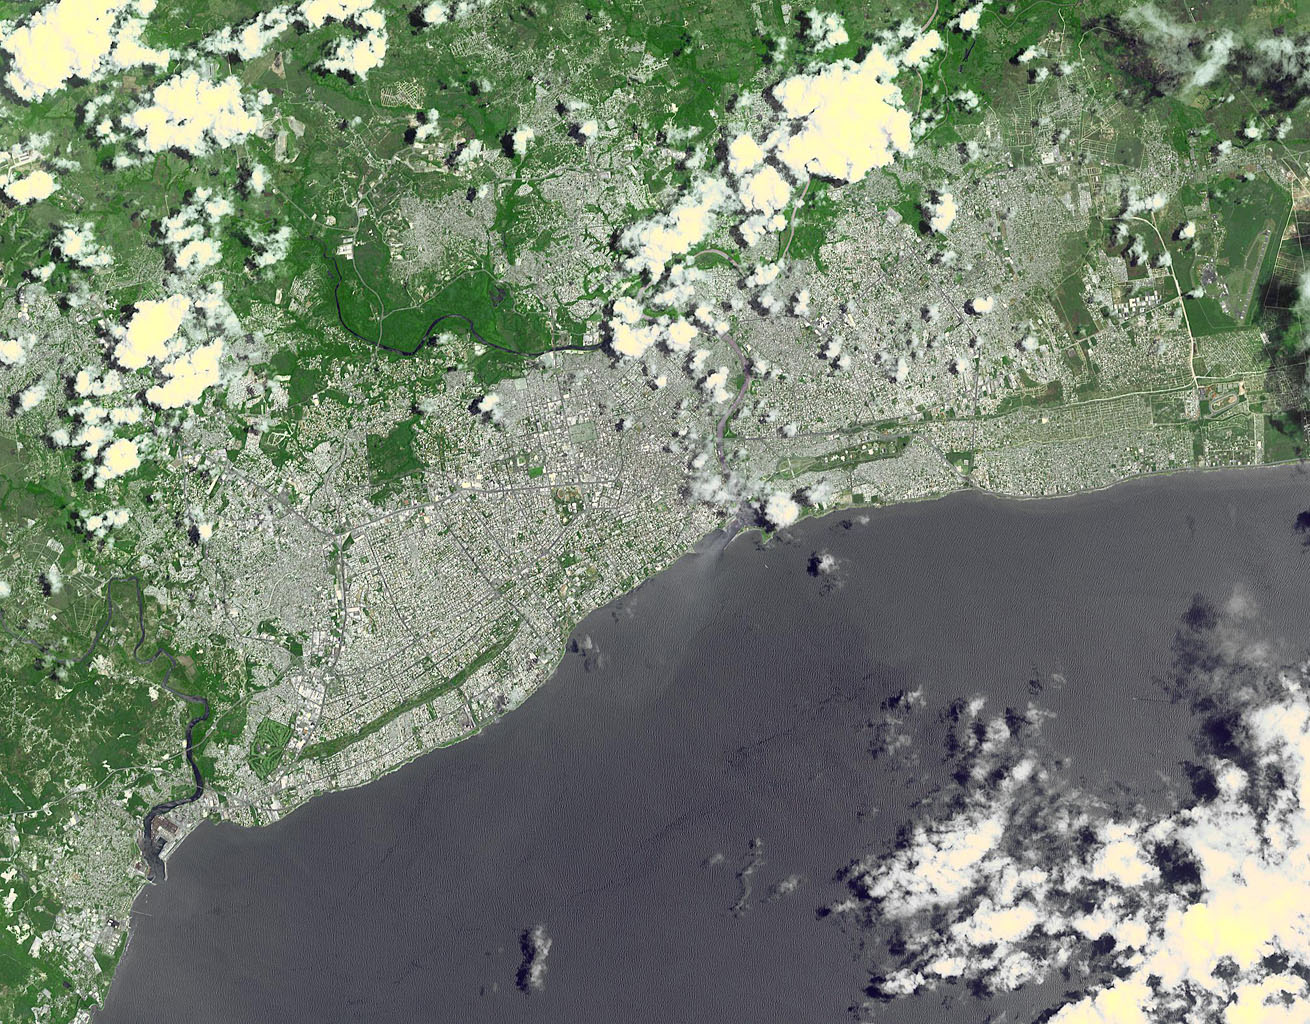 This image, acquired by NASA's Terra spacecraft, shows Santo Domingo, the capital of the Dominican Republic, founded in 1496 Christopher Columbus, it is the oldest continuously inhabited European settlement in the Americas.